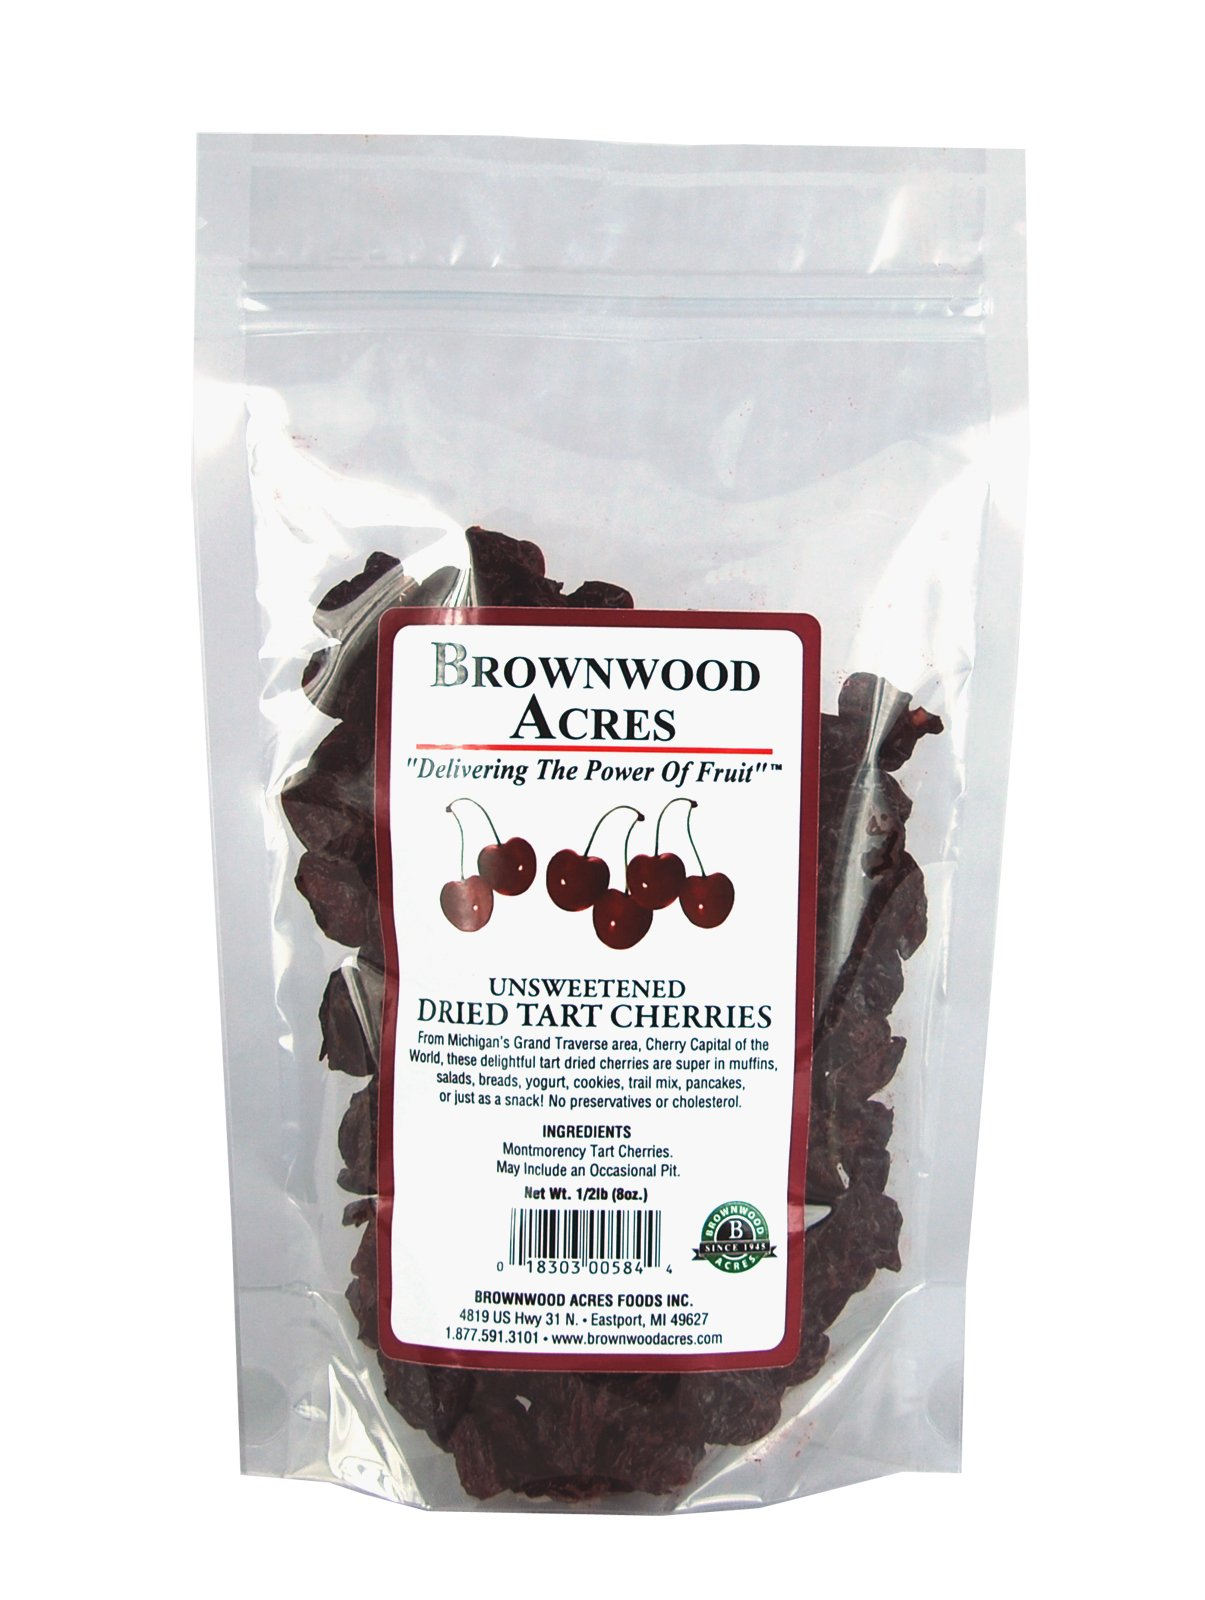 Unsweetened Dried Cherries by Brownwood Acres - No Added Sugars, Oils or fillers - Just Cherries! (1/2 Pound)